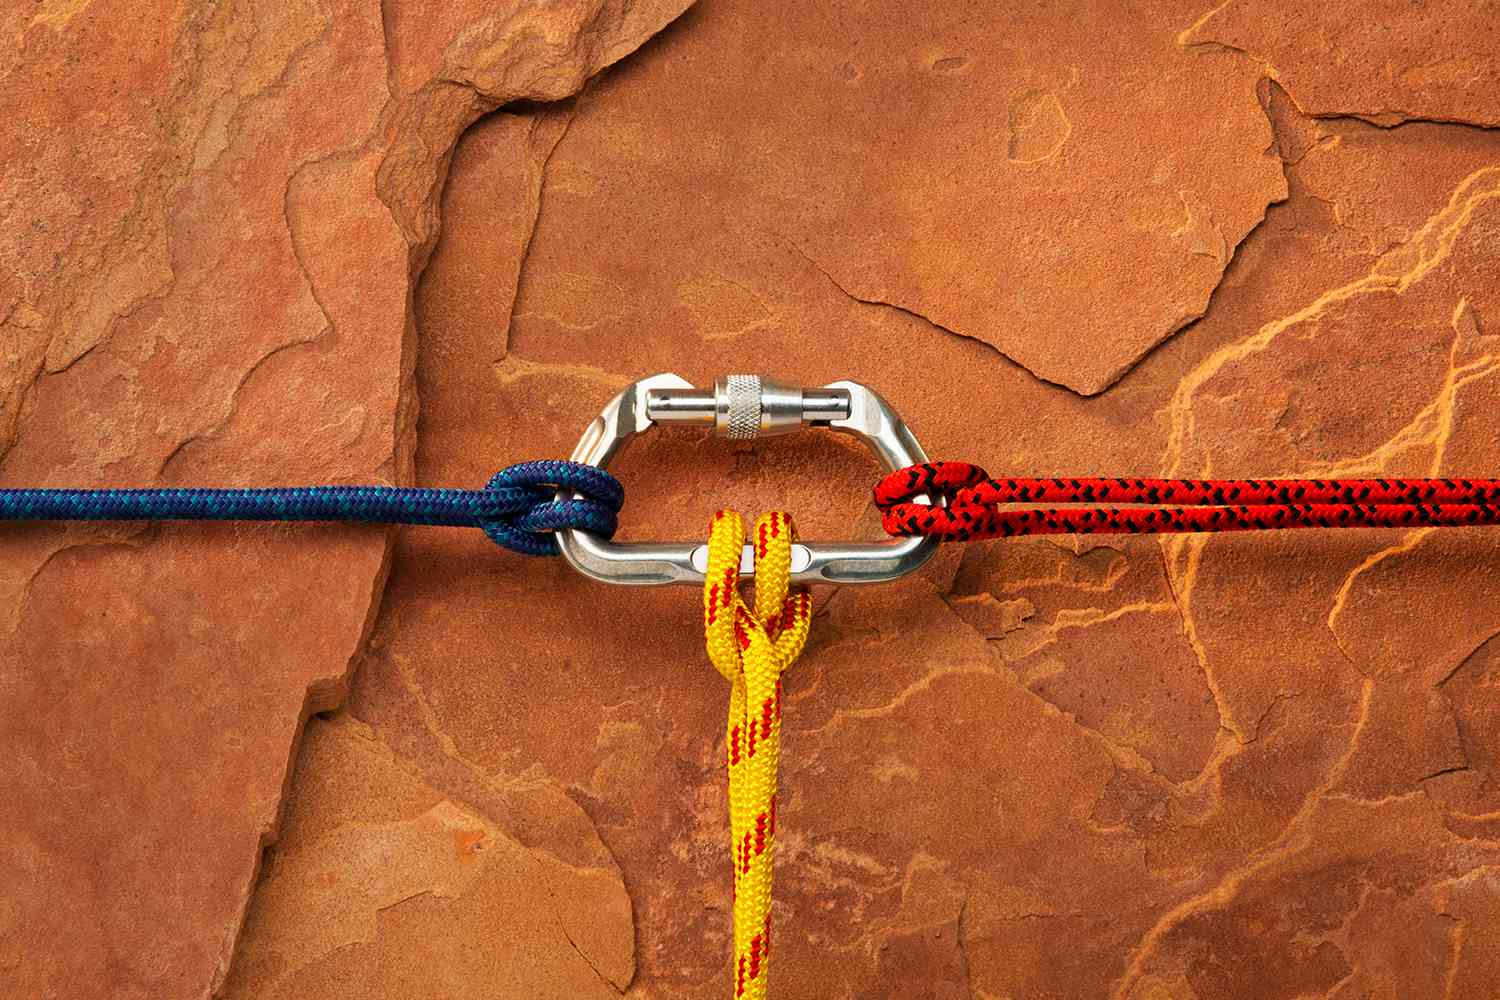 Carabiner with ropes attached against rock face.